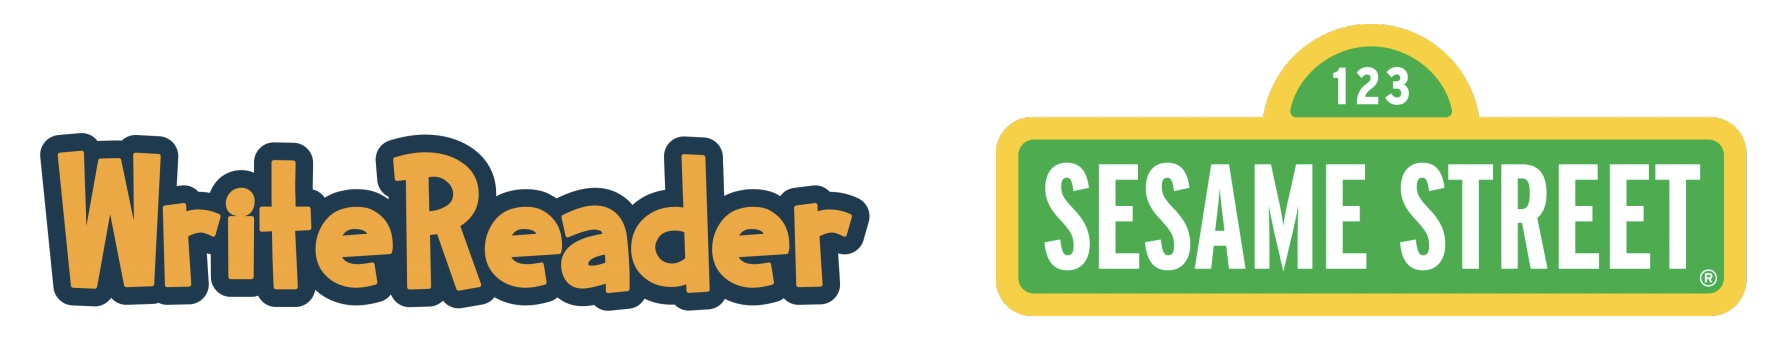 writereader and sesame street logos